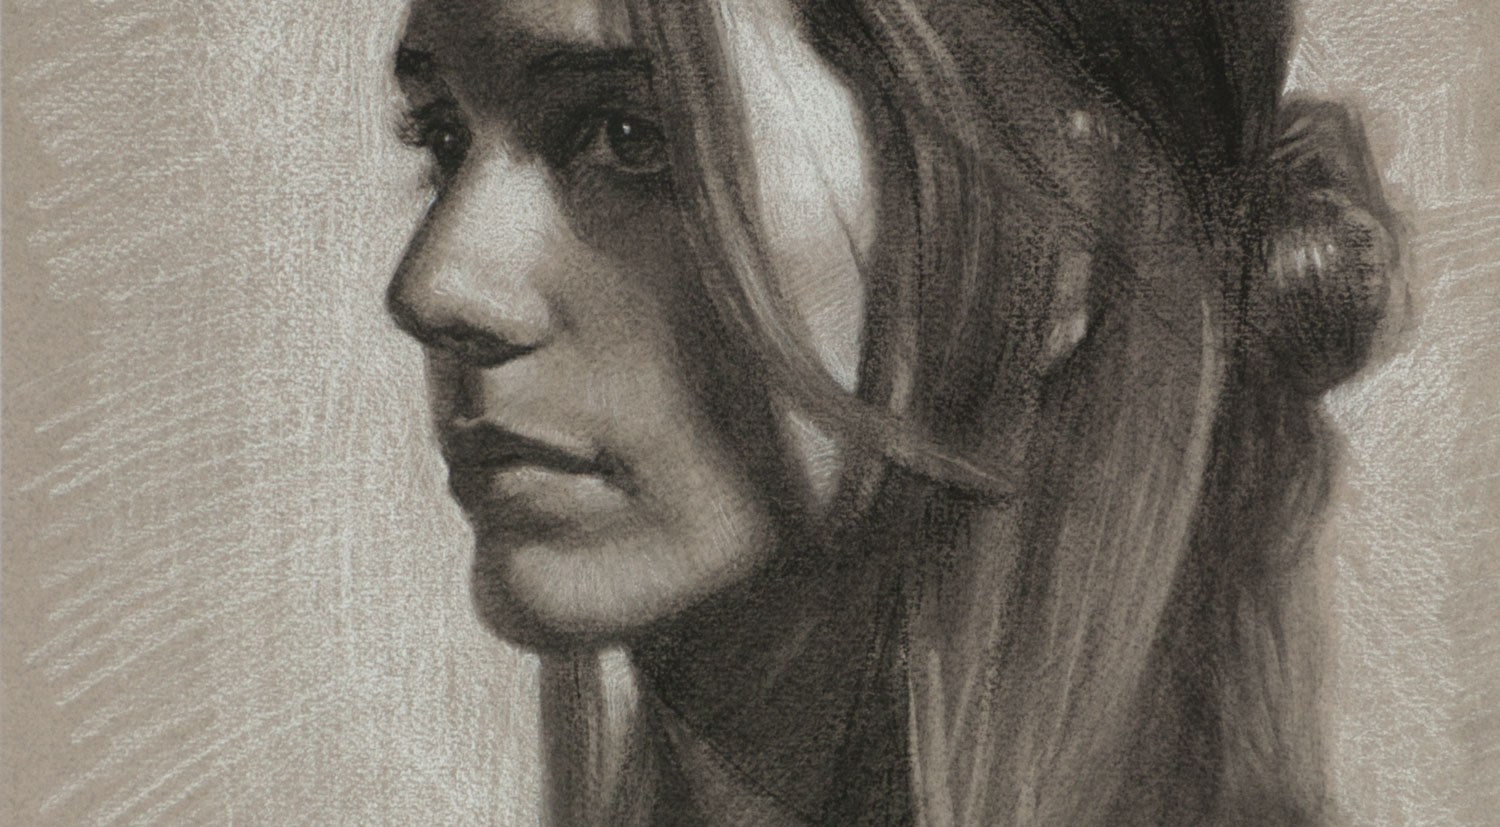 Detail of Marianna Portrait Drawing